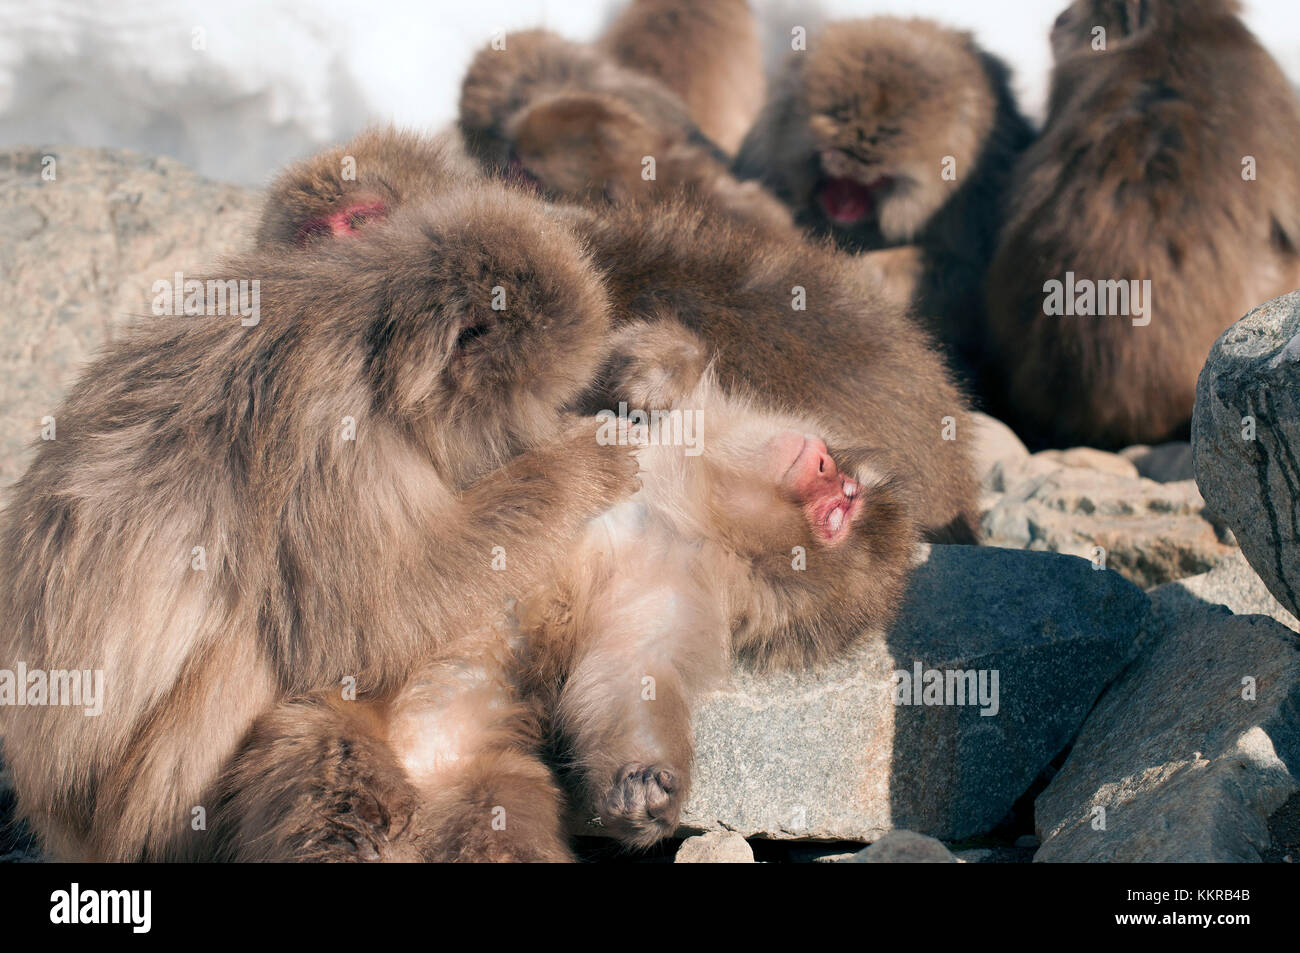 Japanese macaque or snow japanese monkey (Macaca fuscata),Japan Stock Photo